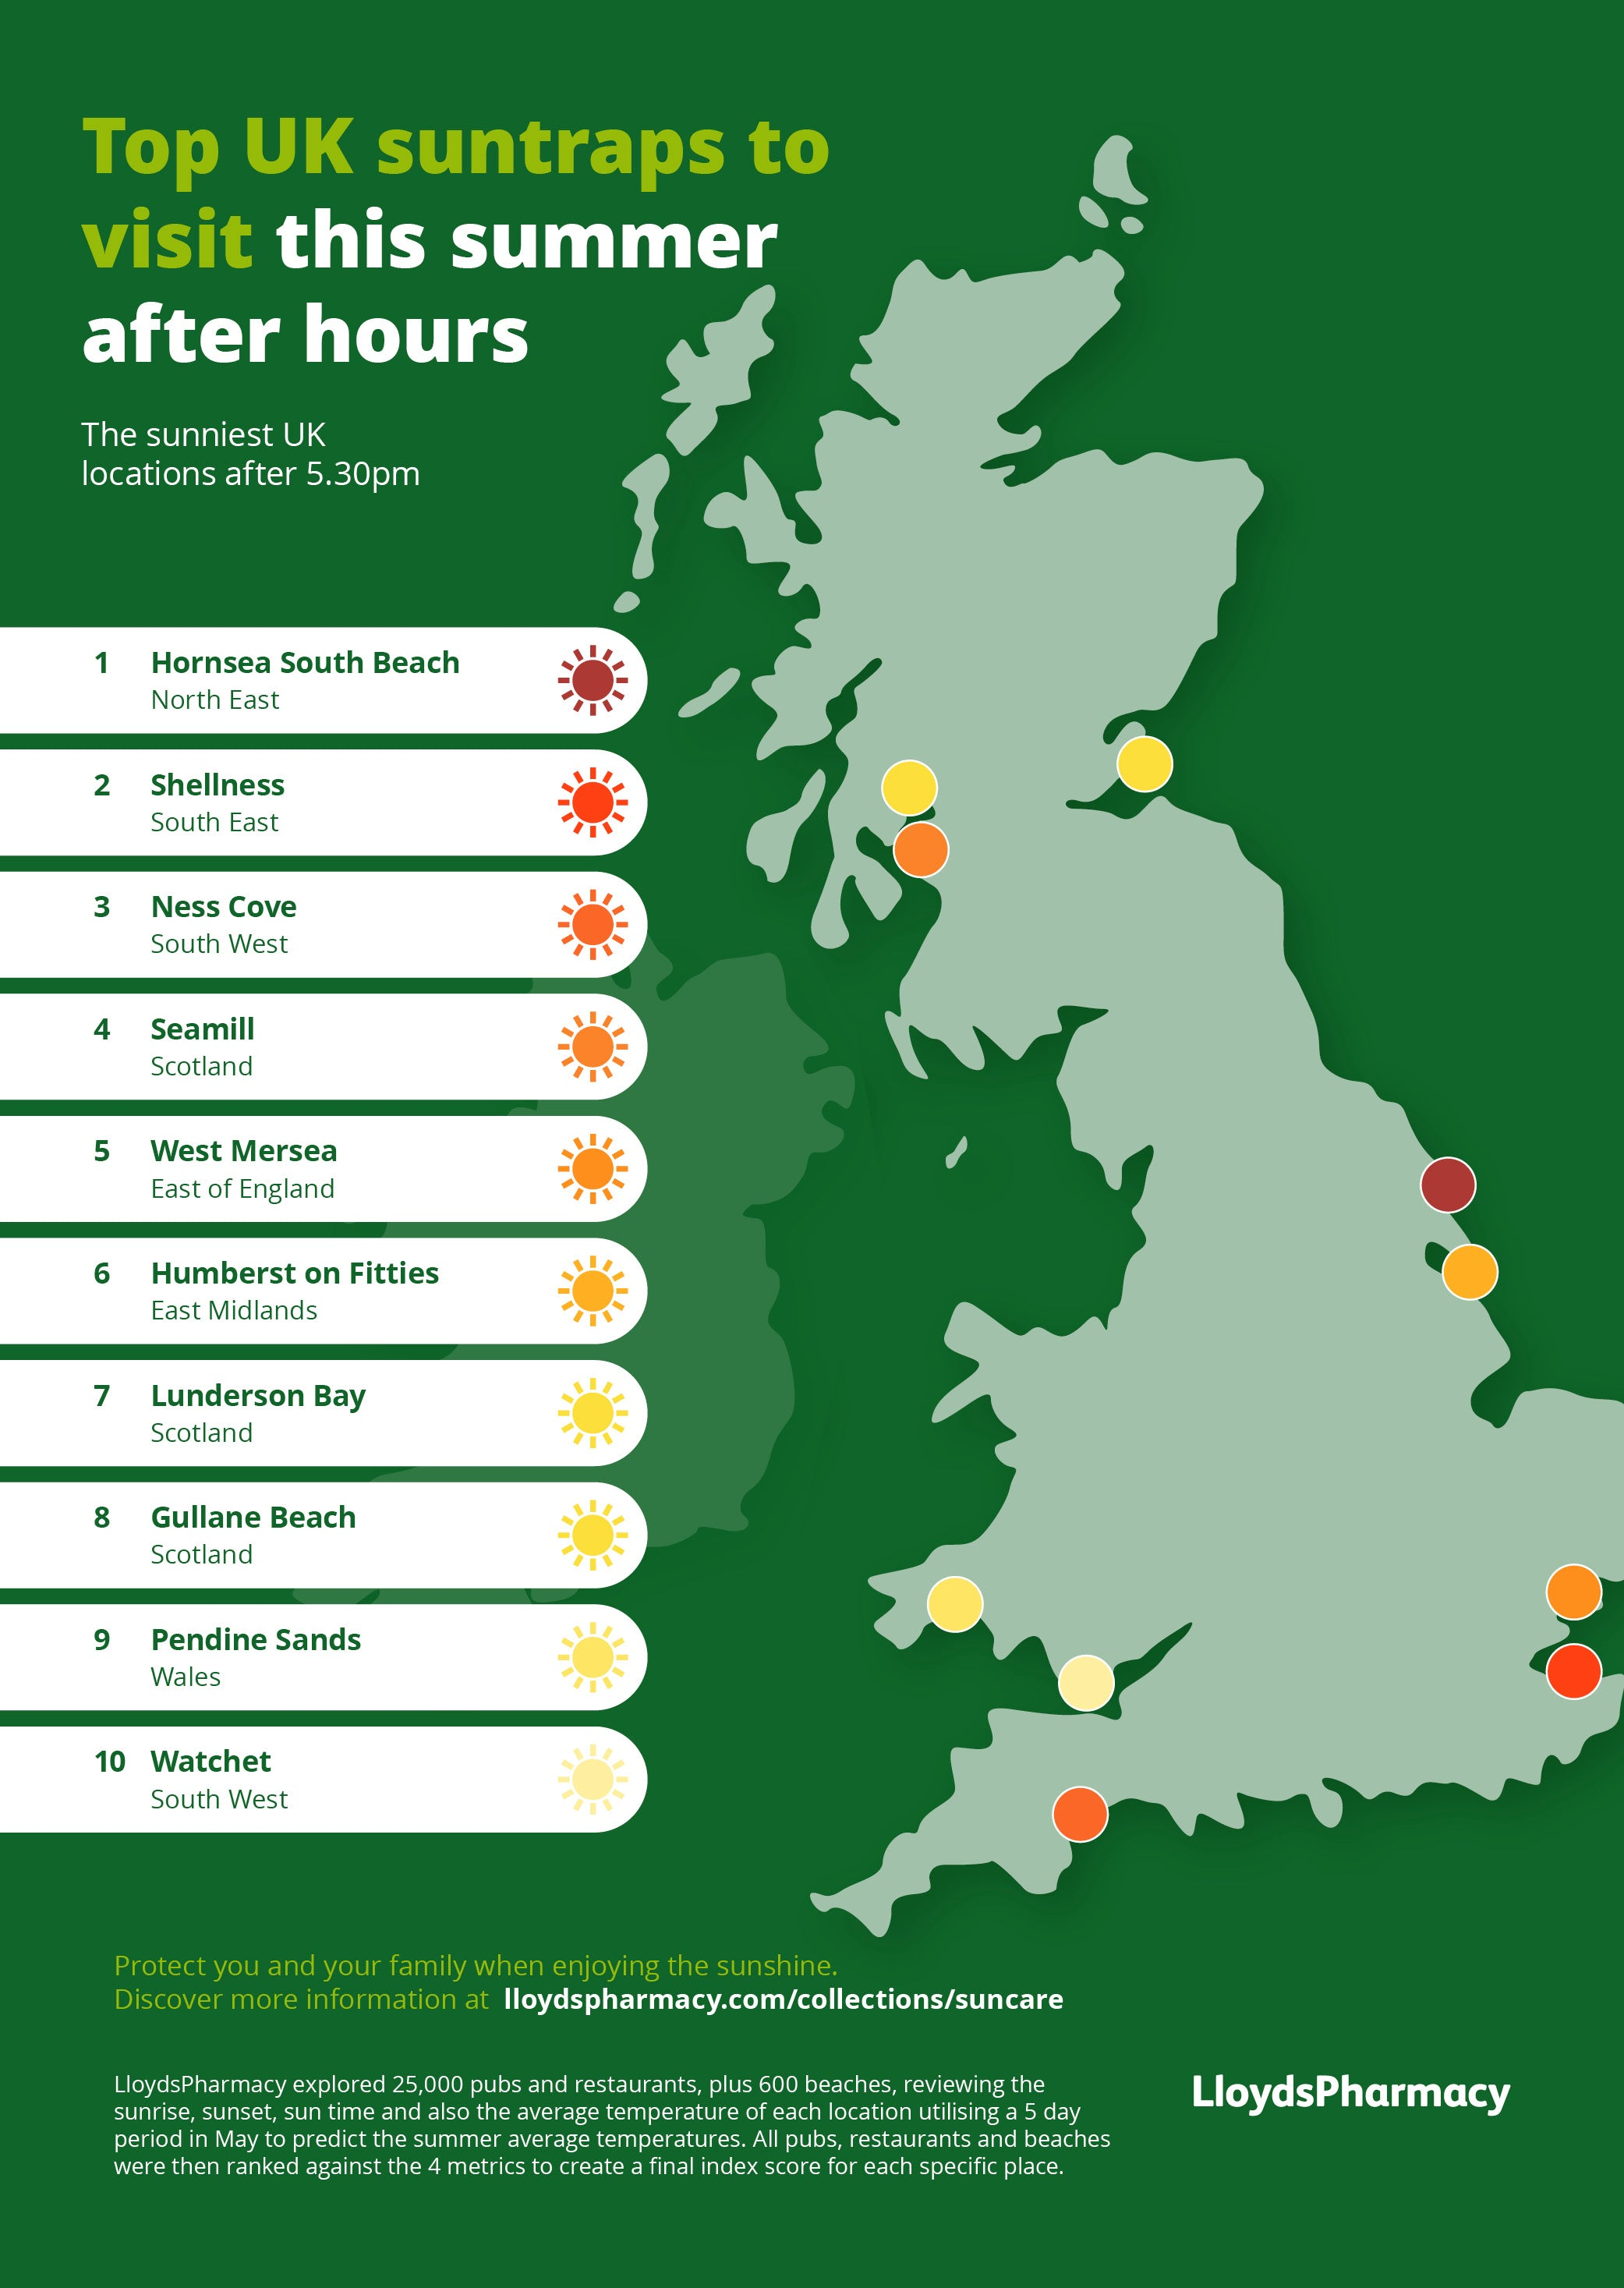 The UK's top 10 sunniest places to go after hour